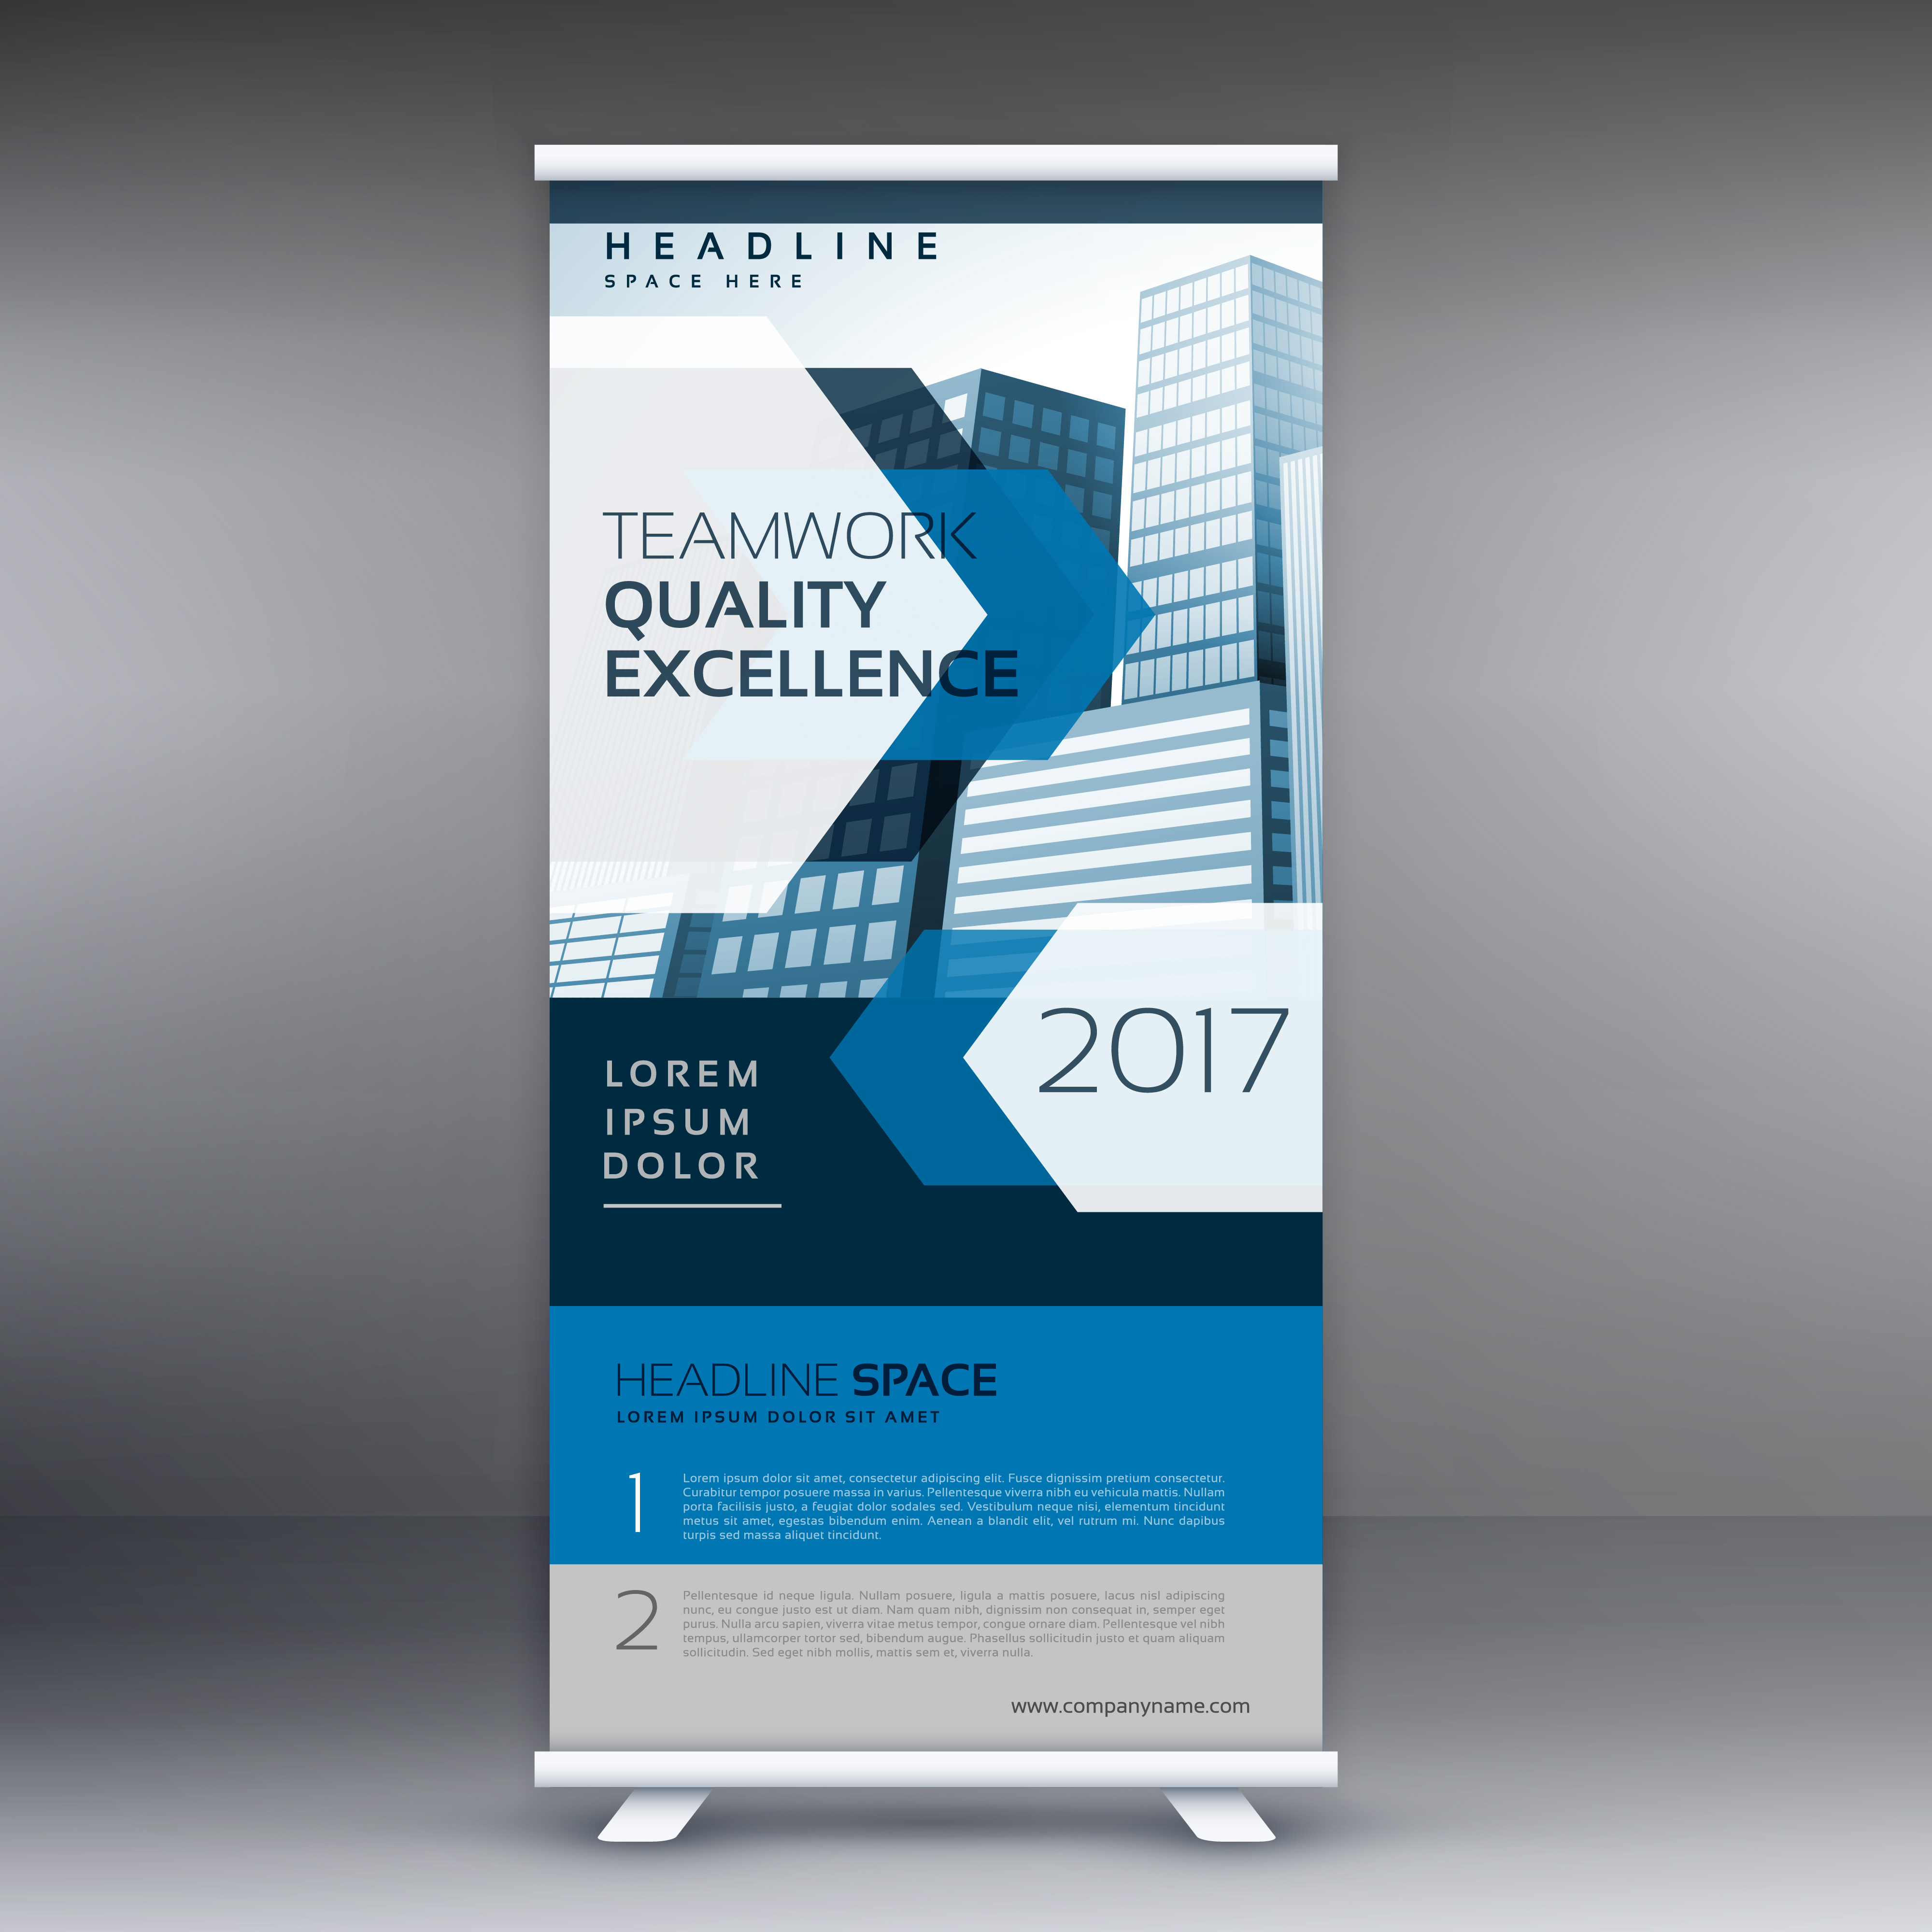 business presentation standee display roll up banner